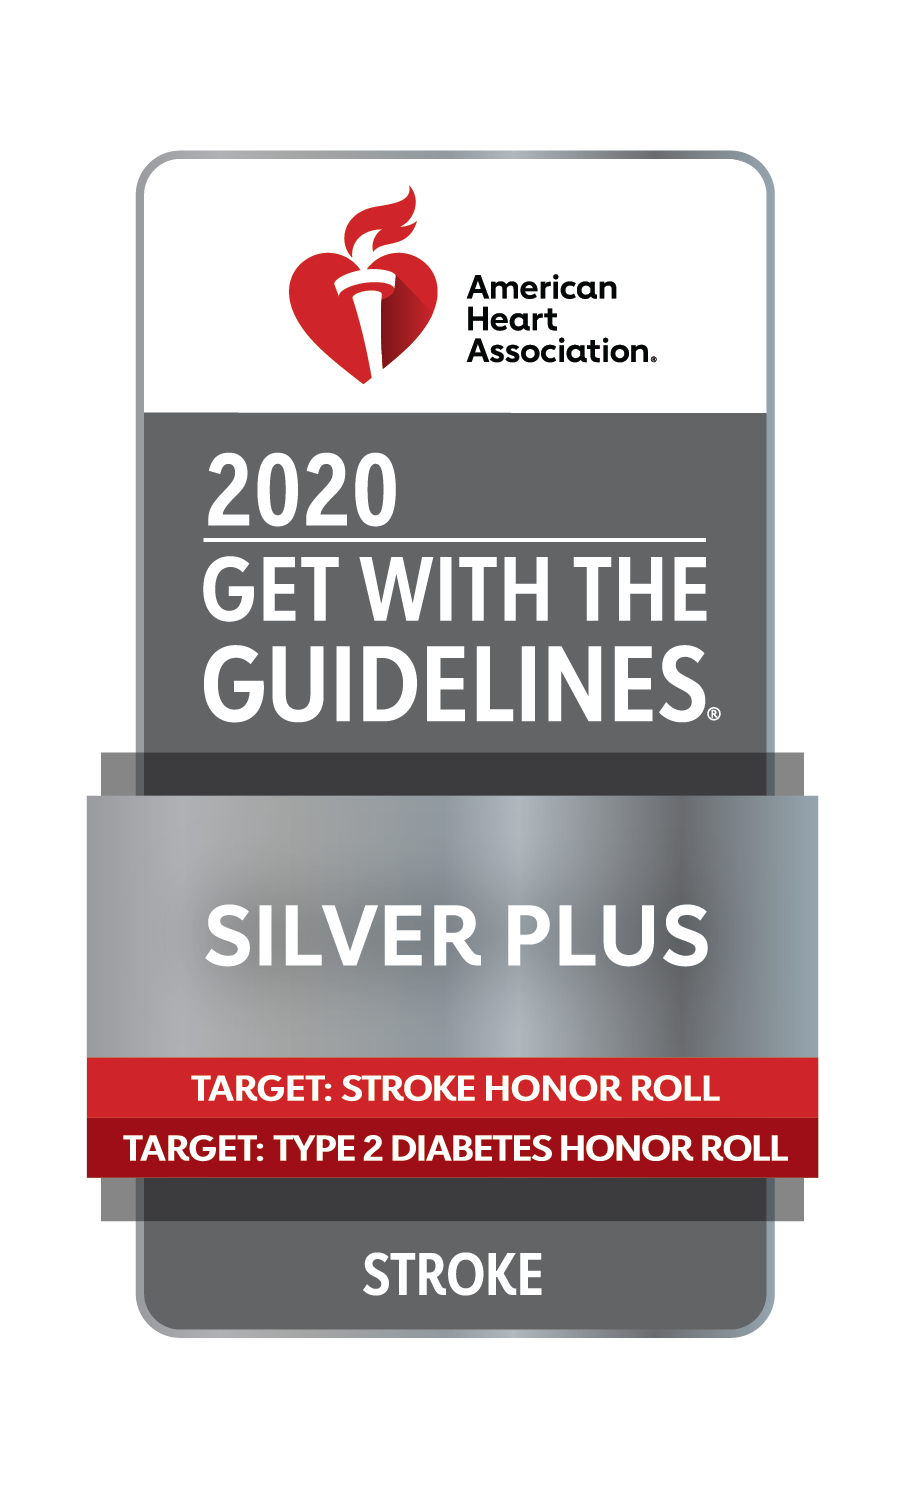 Get With The Guidelines-Stroke Silver Plus Quality Achievement Award